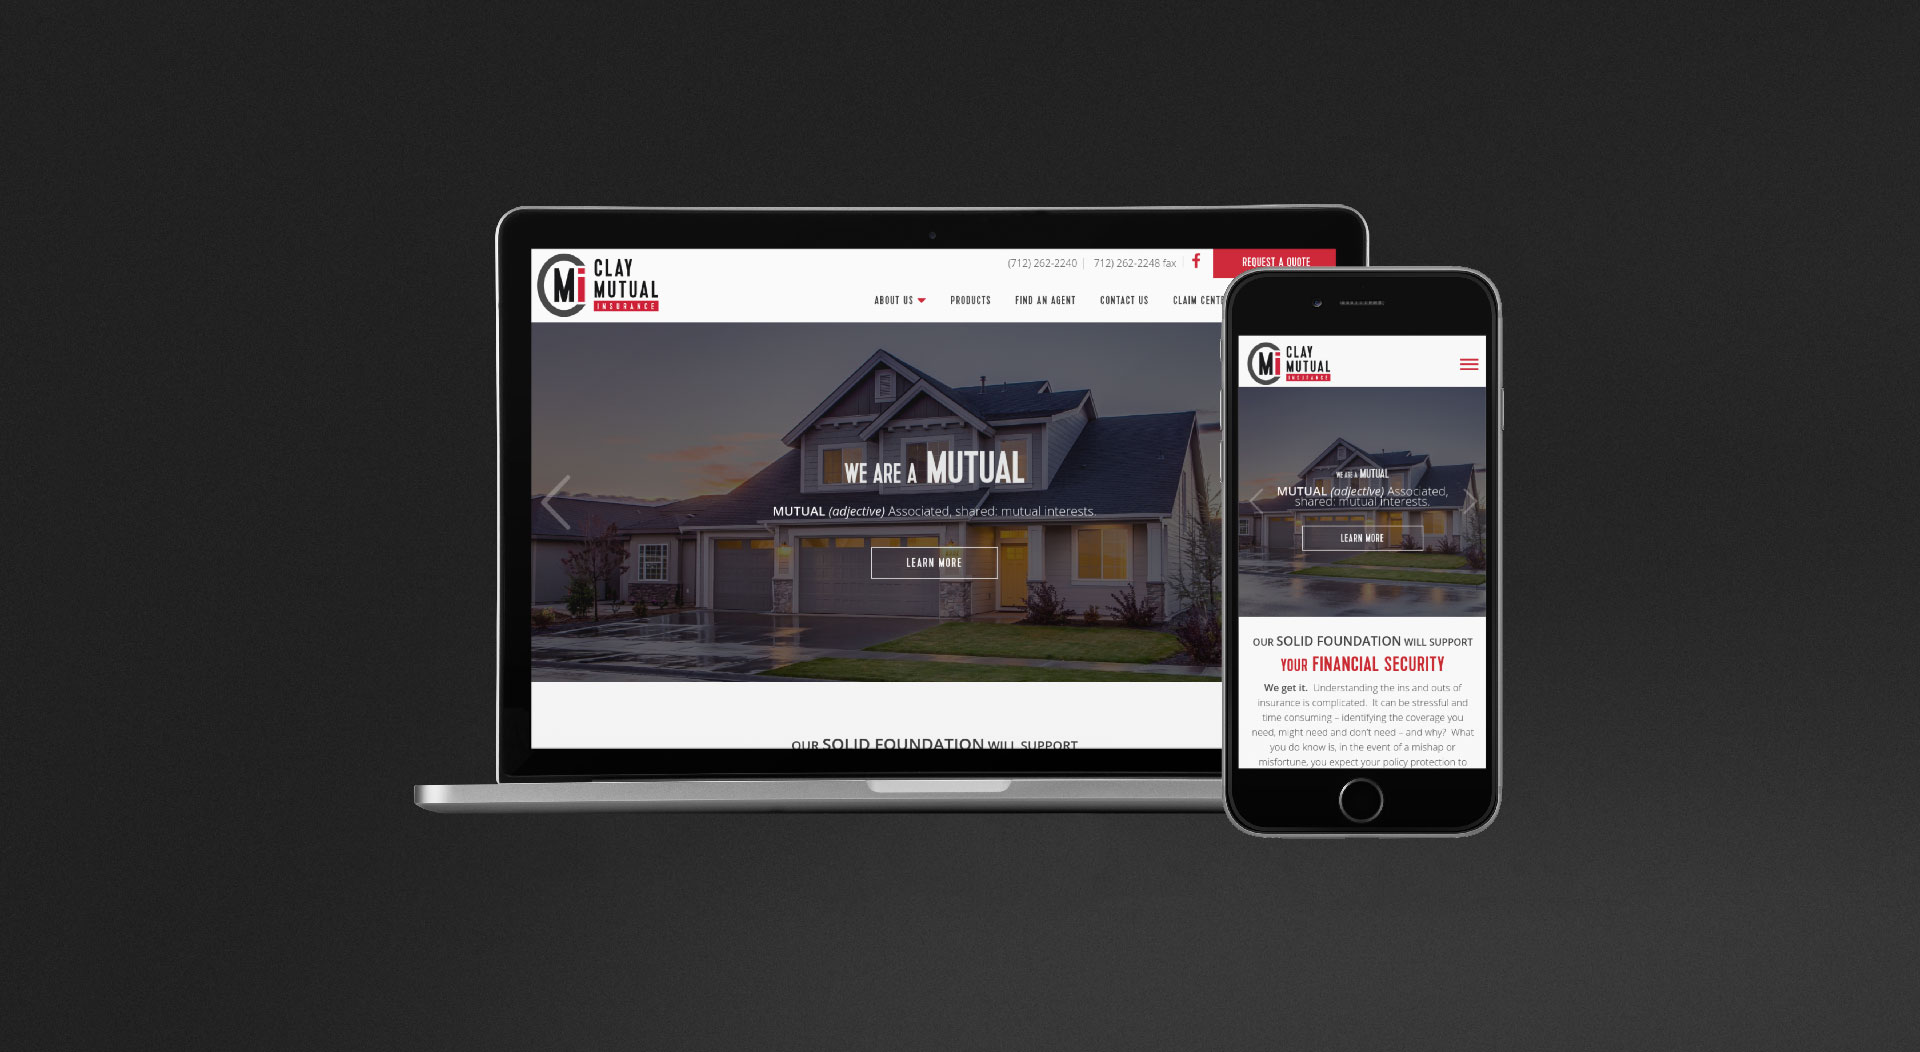 Clay Mutual Insurance Responsive Web Design